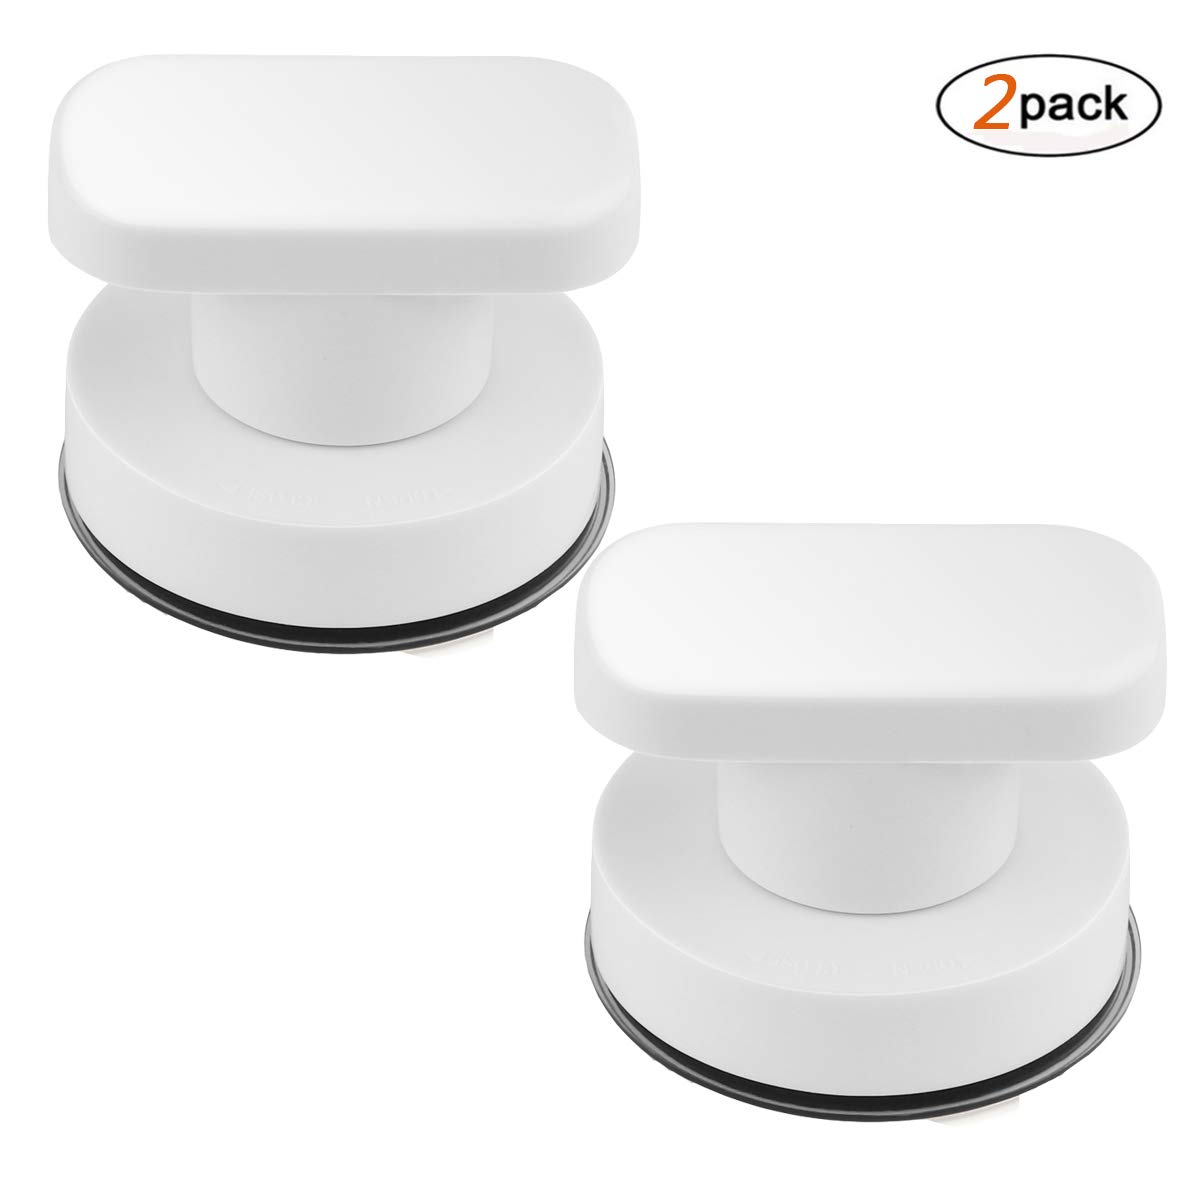 DDSKY 2-Pack Strong Suction Cup Drawer Glass Mirror Wall Tile Handles Toilet Bathroom Door Pulls Glass Door Pull Adsorbent Handle and Knobs